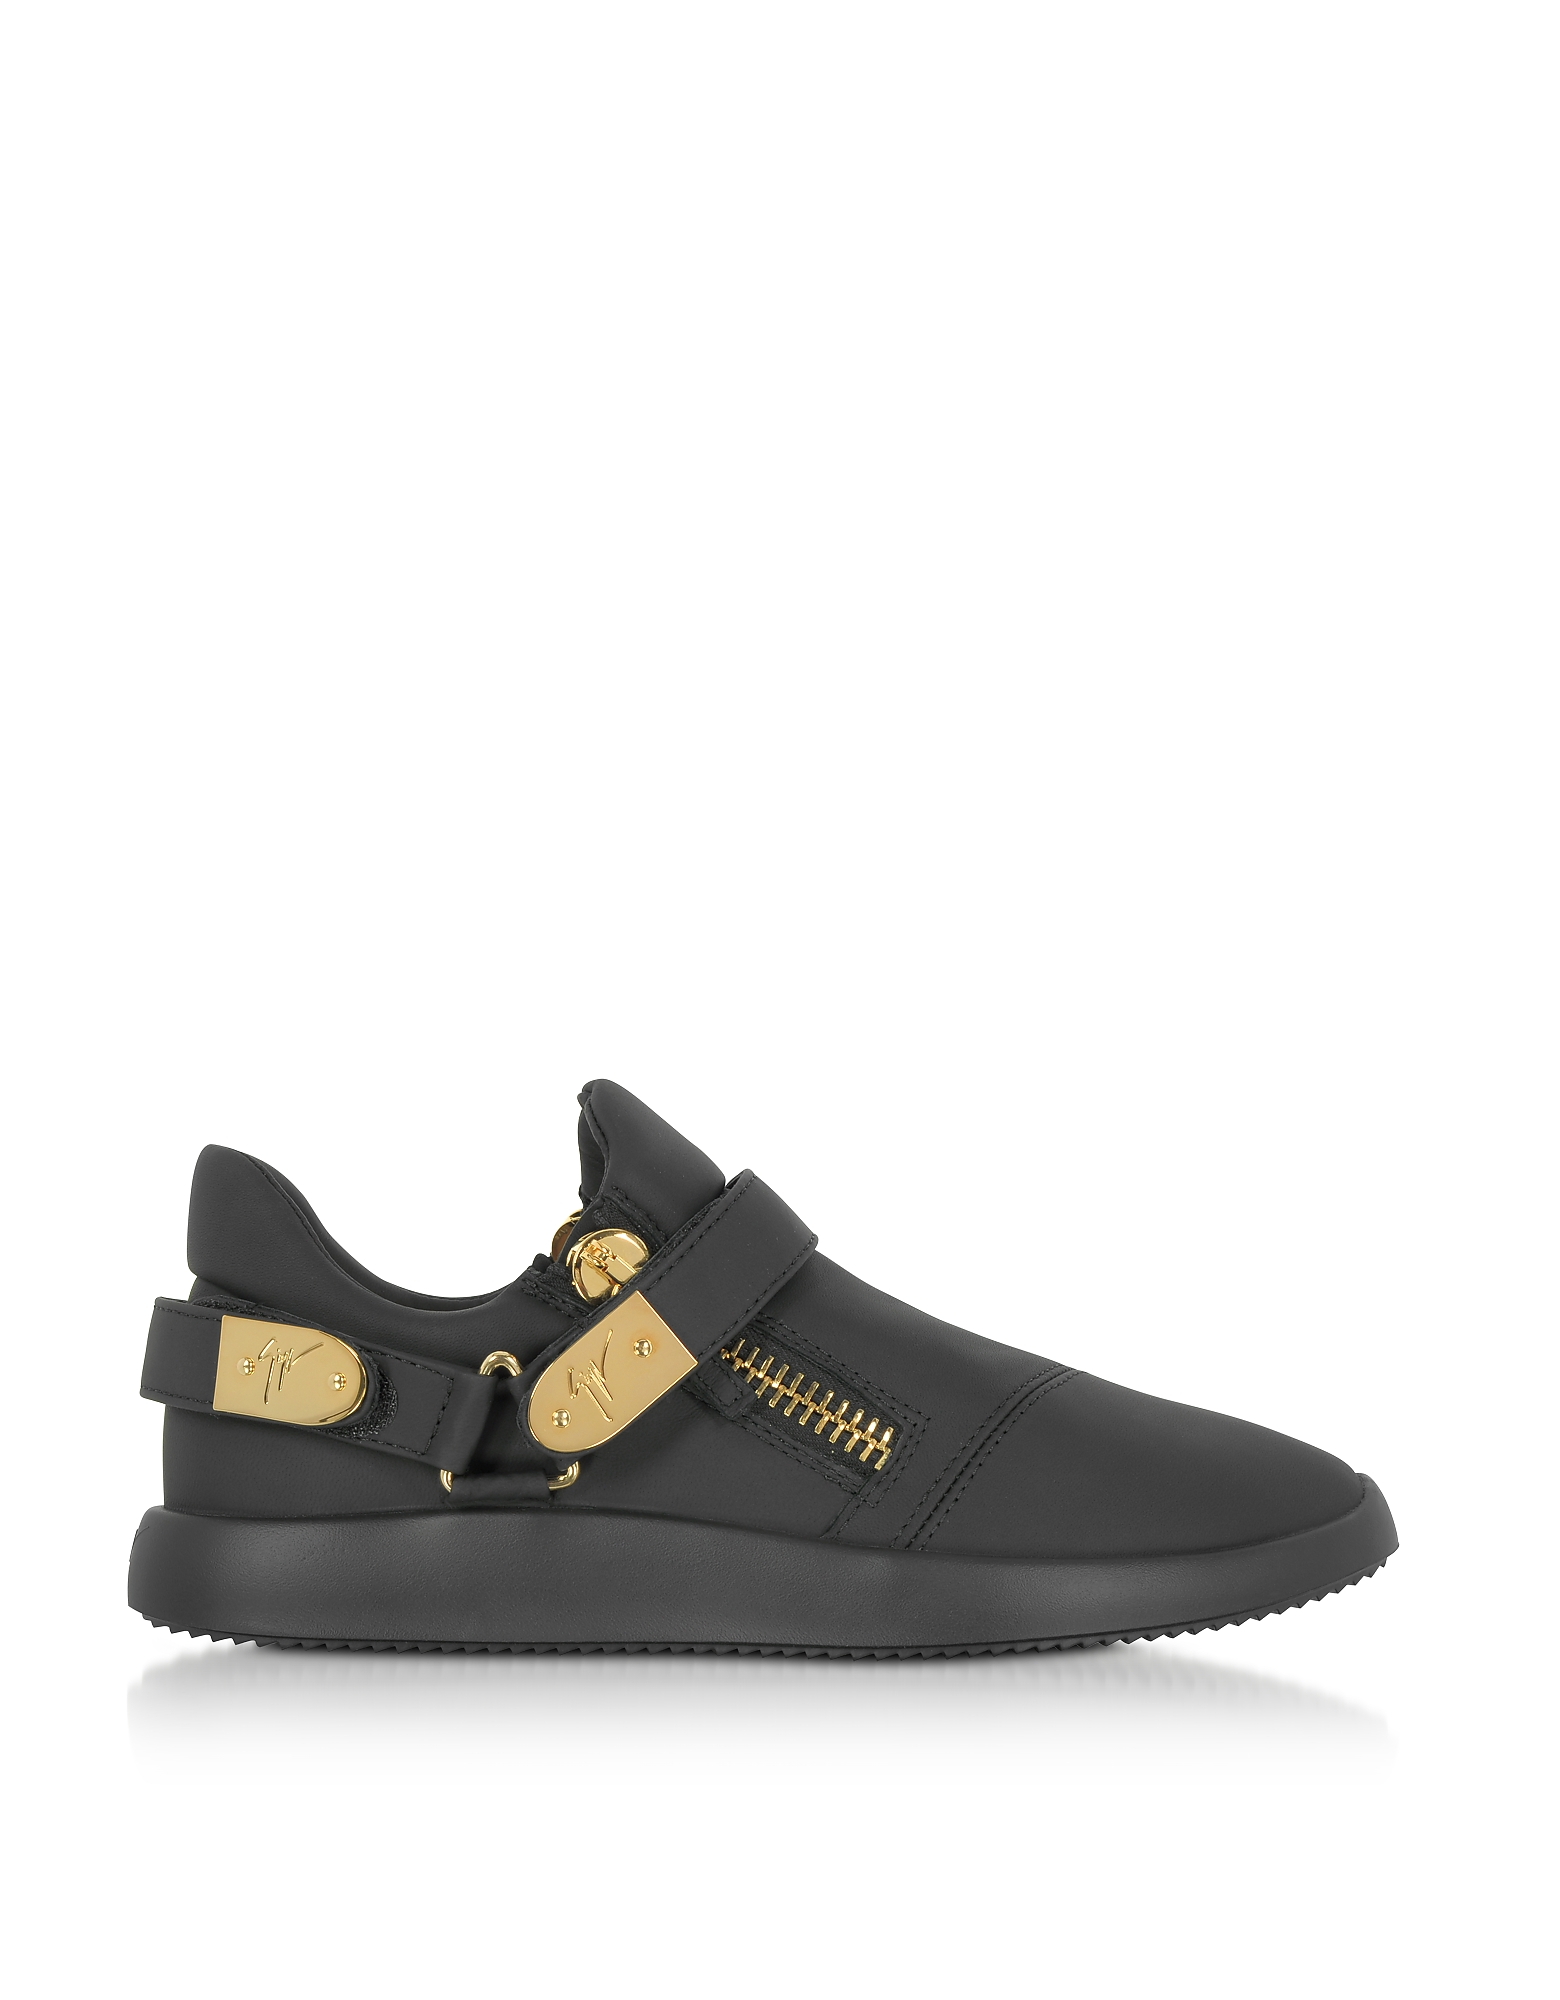 Giuseppe Zanotti Shoes, Black Leather Low Top Men's Sneakers